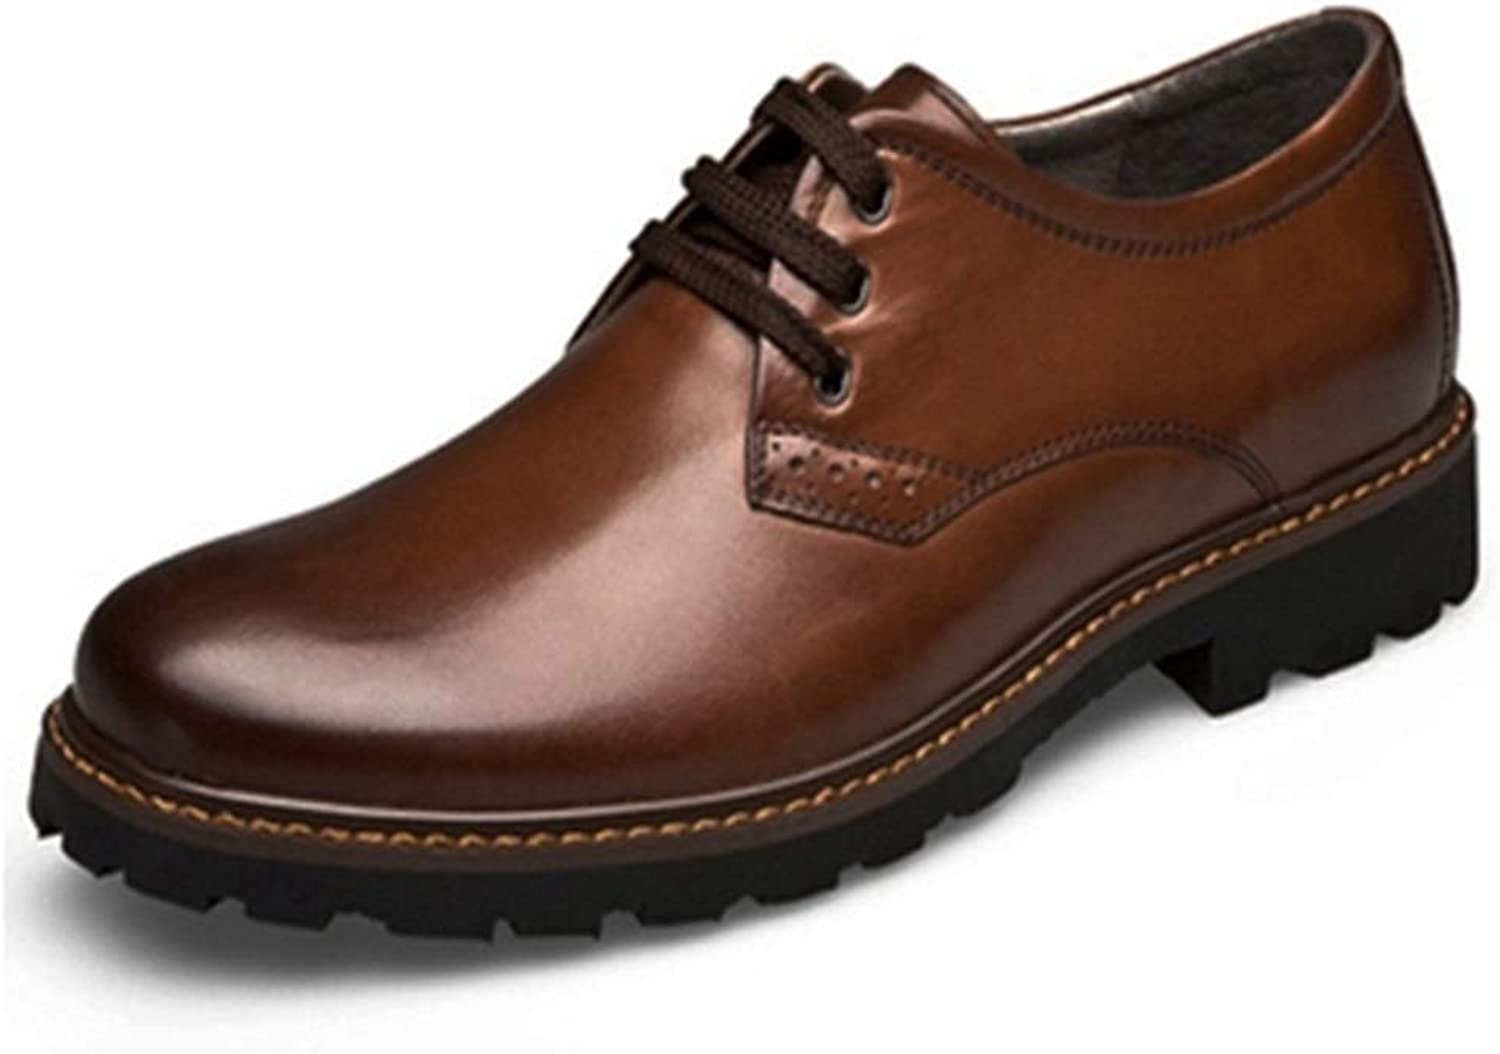 Men's Oxford Casual Comfort OX Leather Lace Up Classic Leisure shoes Cricket shoes